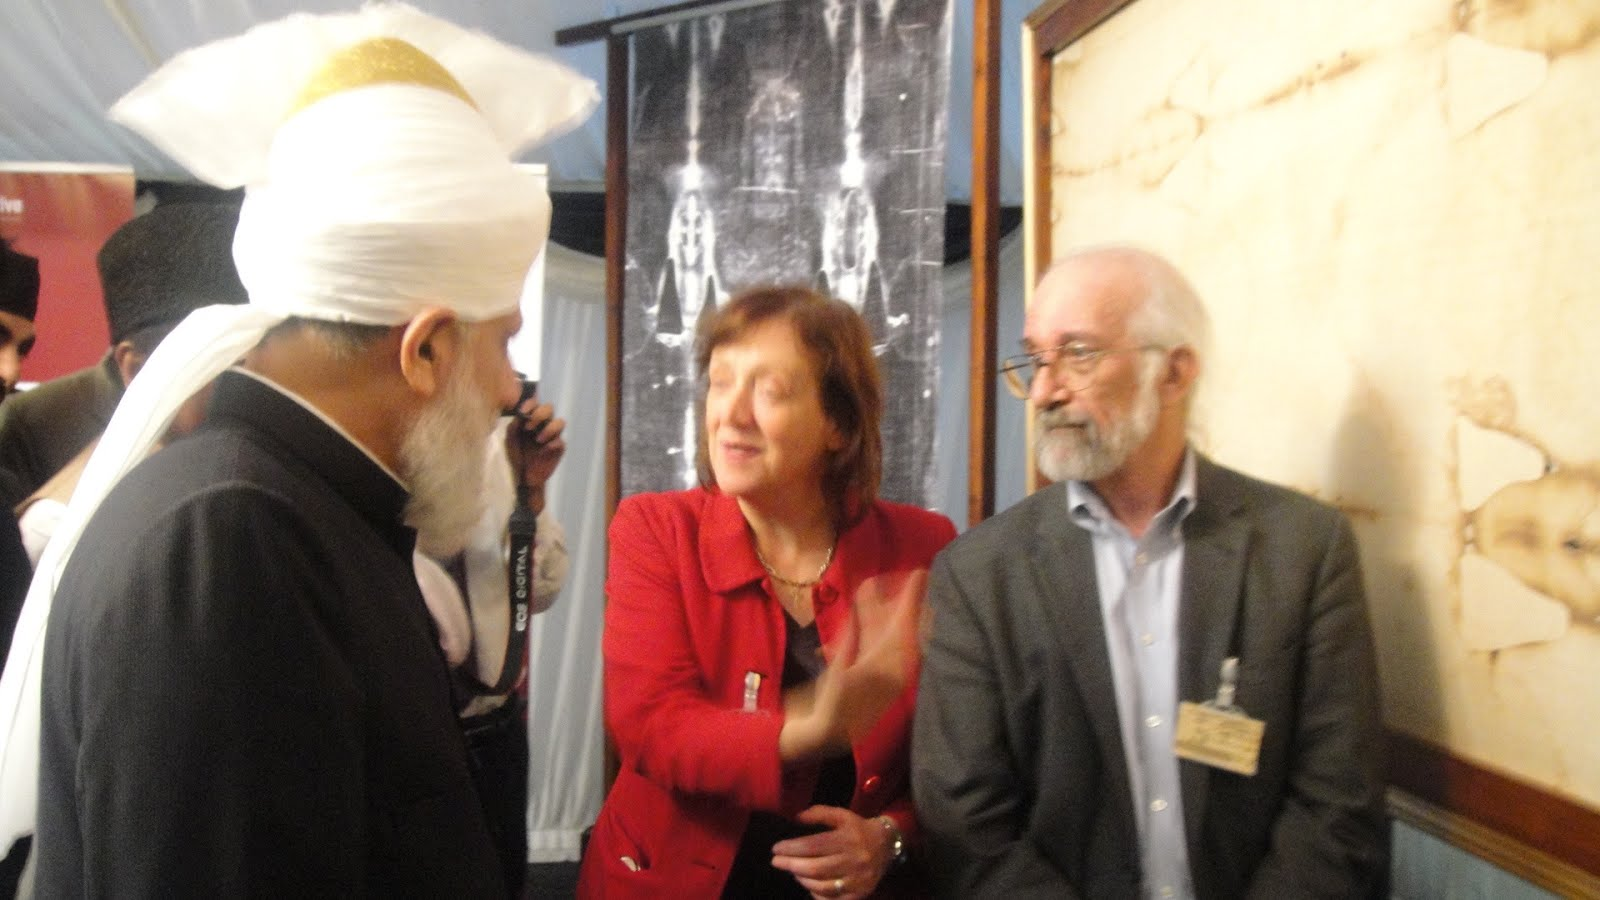 Barrie Schwortz meets Muslim Leader Hadhrat Mirza Masroor Ahmad and talks about Jesus on the Shroud